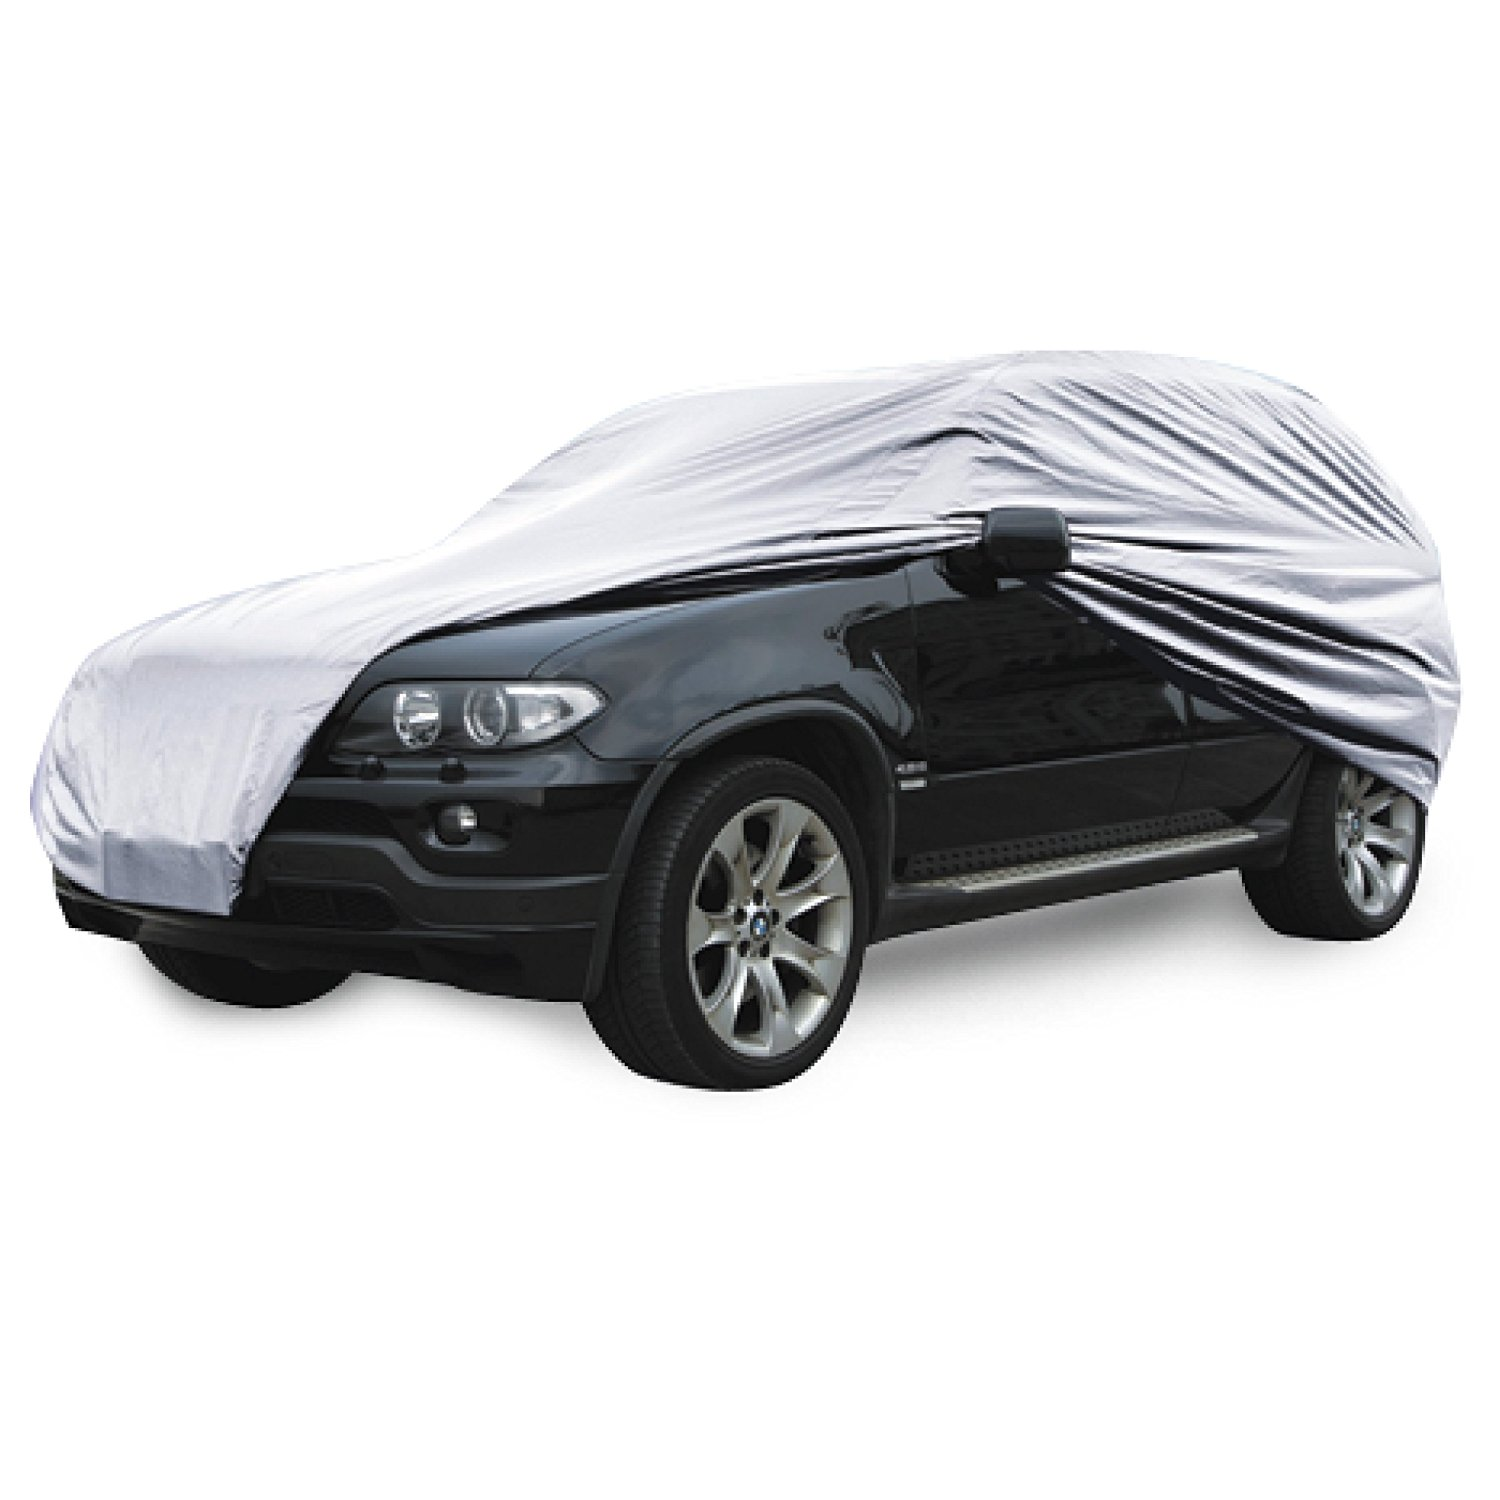 SUV Van Cover for HONDA Odyssey 05-14, Sun UV Dust Wind Proof, USA, Brand BDK